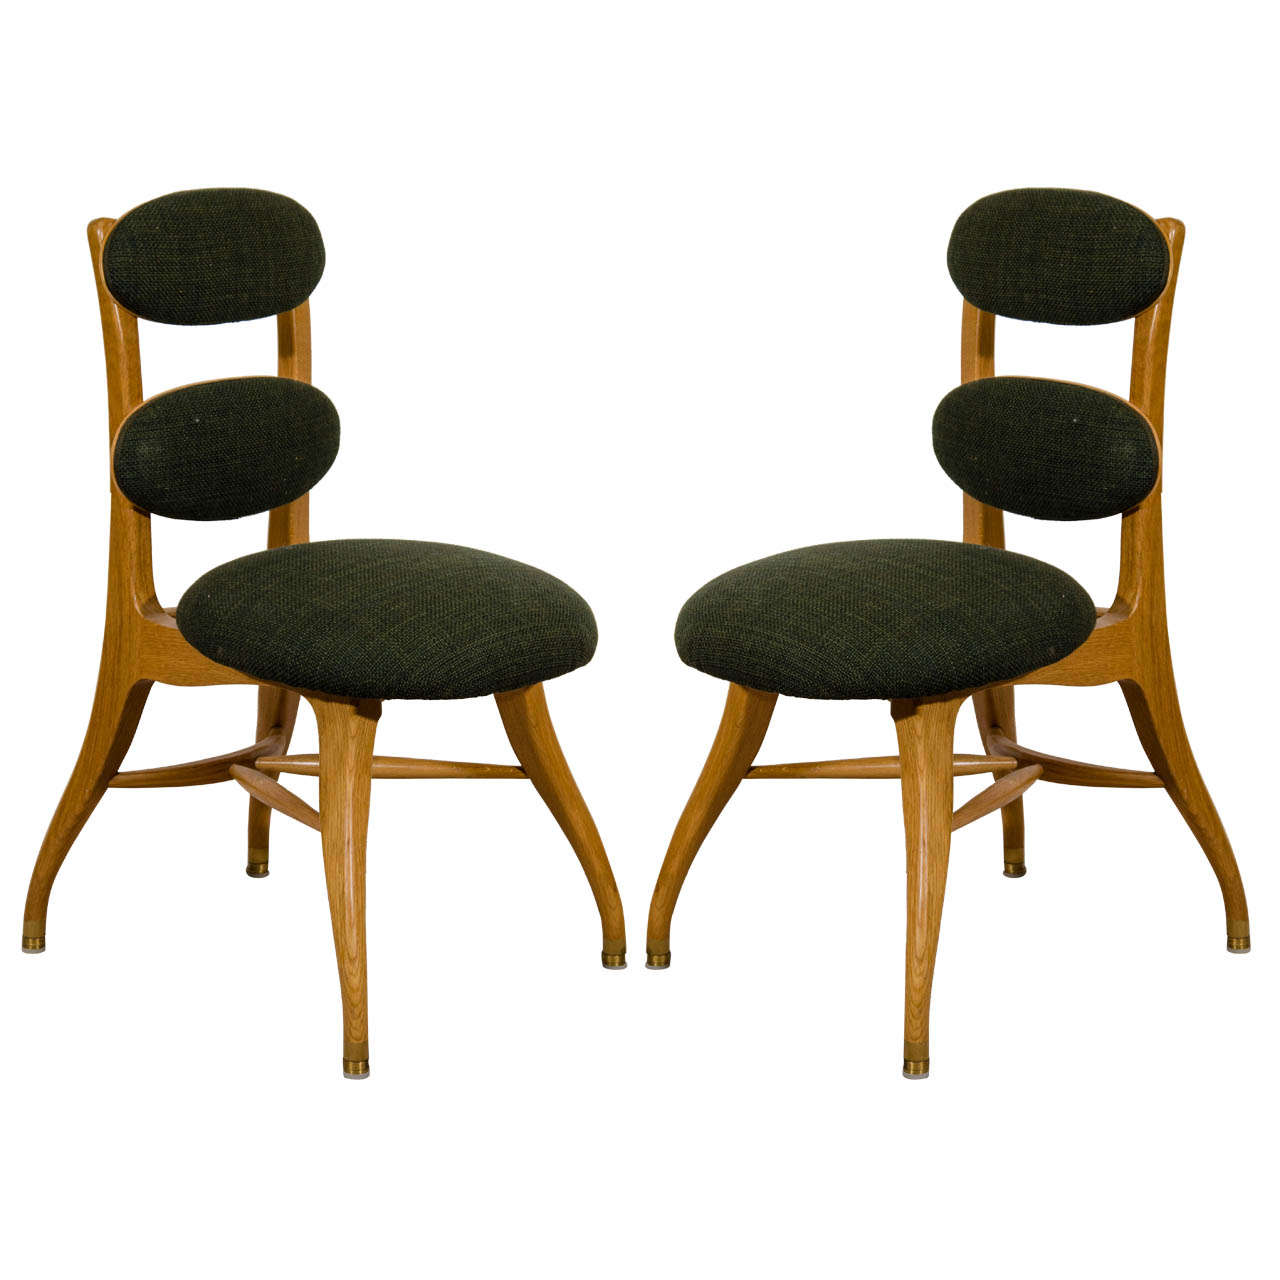 A Mid Century Set Of Four Wooden Sculptural Dining Chairs By Poul Volther At